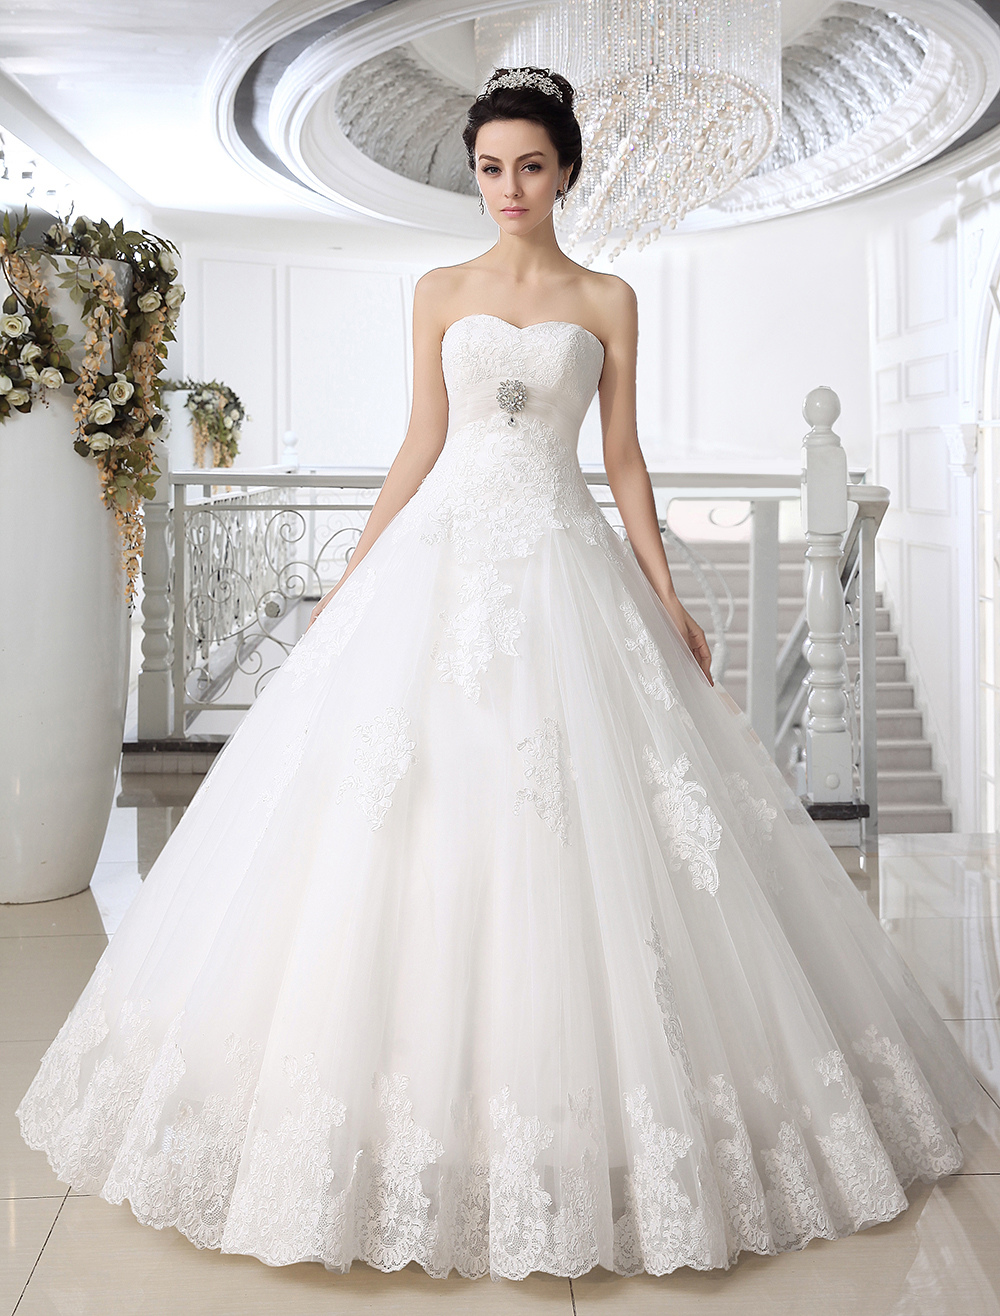 Tidebuy wedding dresses are widely known by most people for their trendy designs, high quality, elegant tastes and affordable prices. There are various cheap wedding dresses on this website, and you can choose your favorite ones easily.